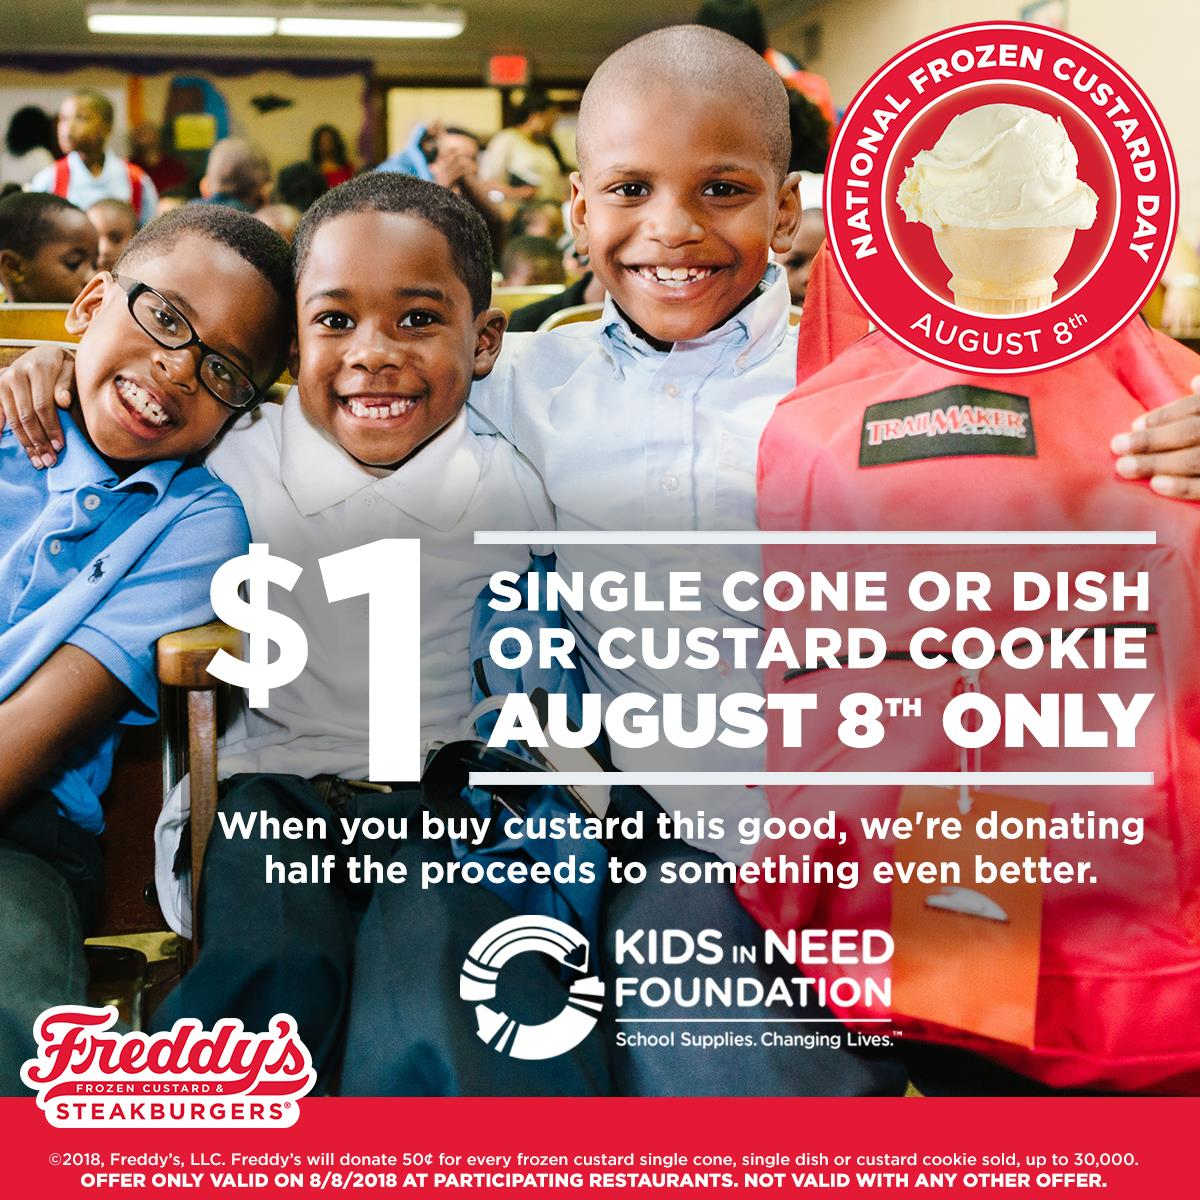 Freddys Steakburgers Coupon June 2019 $1 custard cone, dish or cookie today at Freddys Steakburgers restaurants